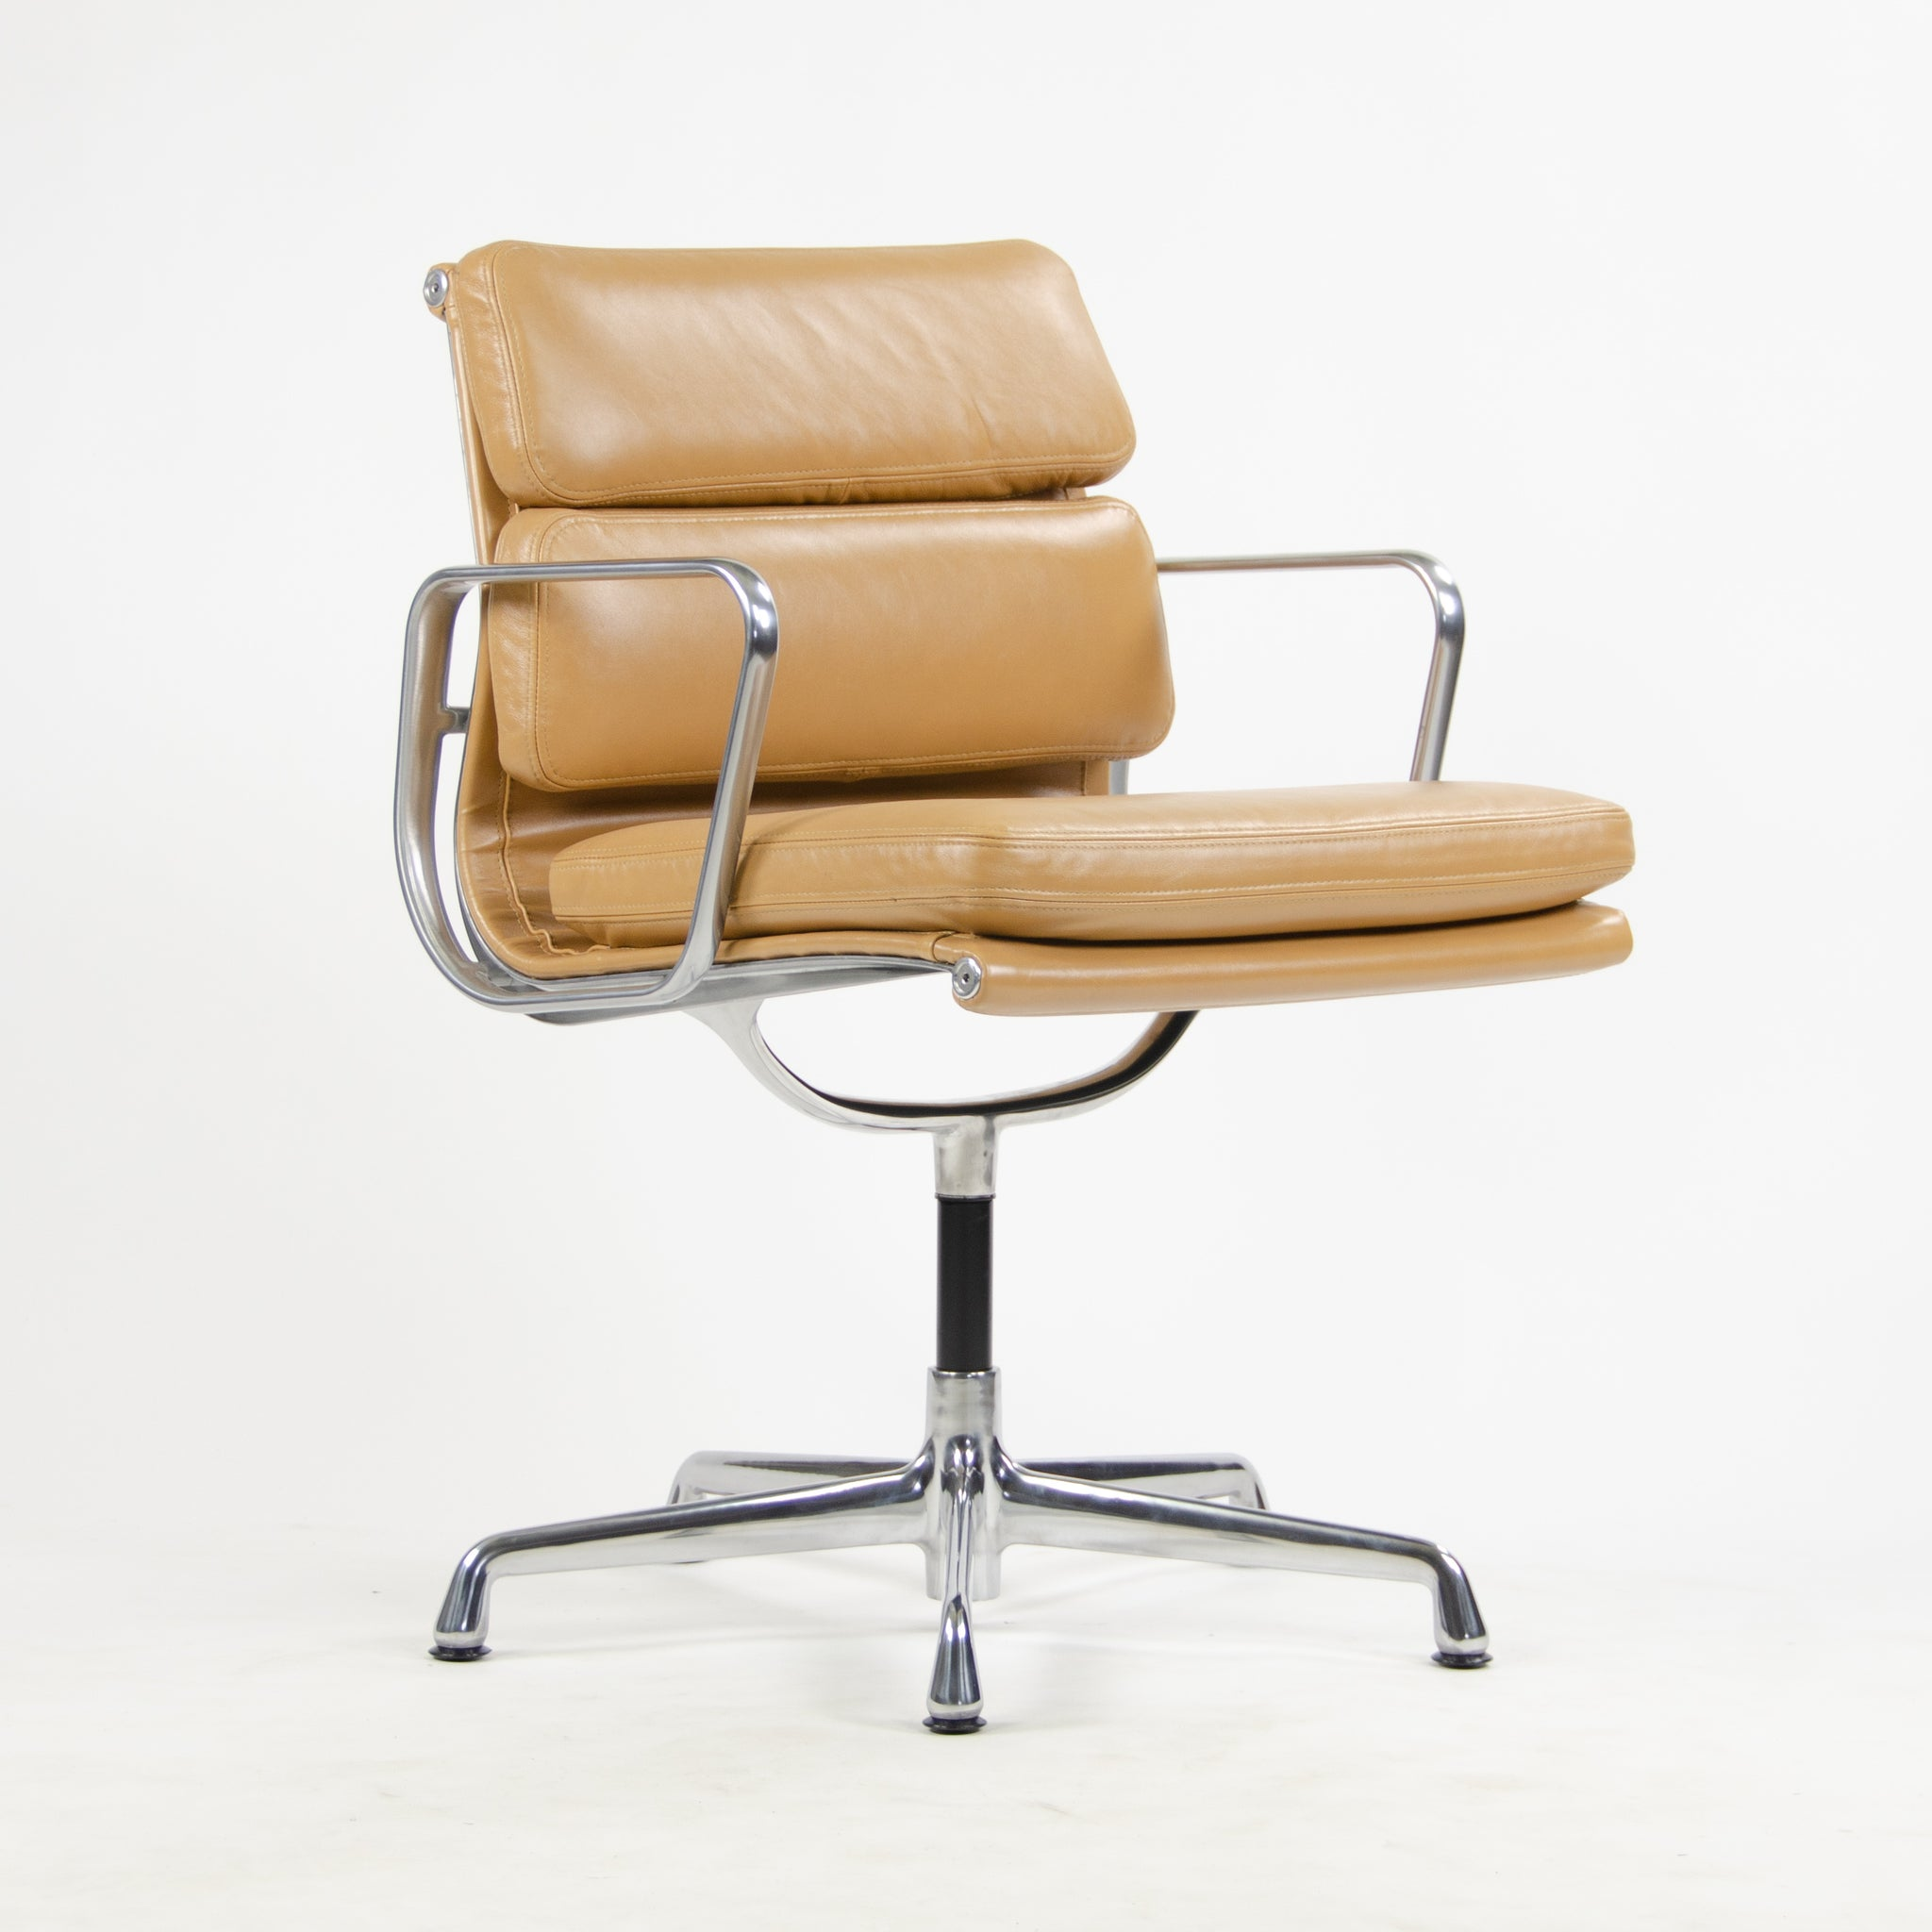 SOLD Eames Herman Miller Low Soft Pad Aluminum Desk Side Chair Tan Leather NEW